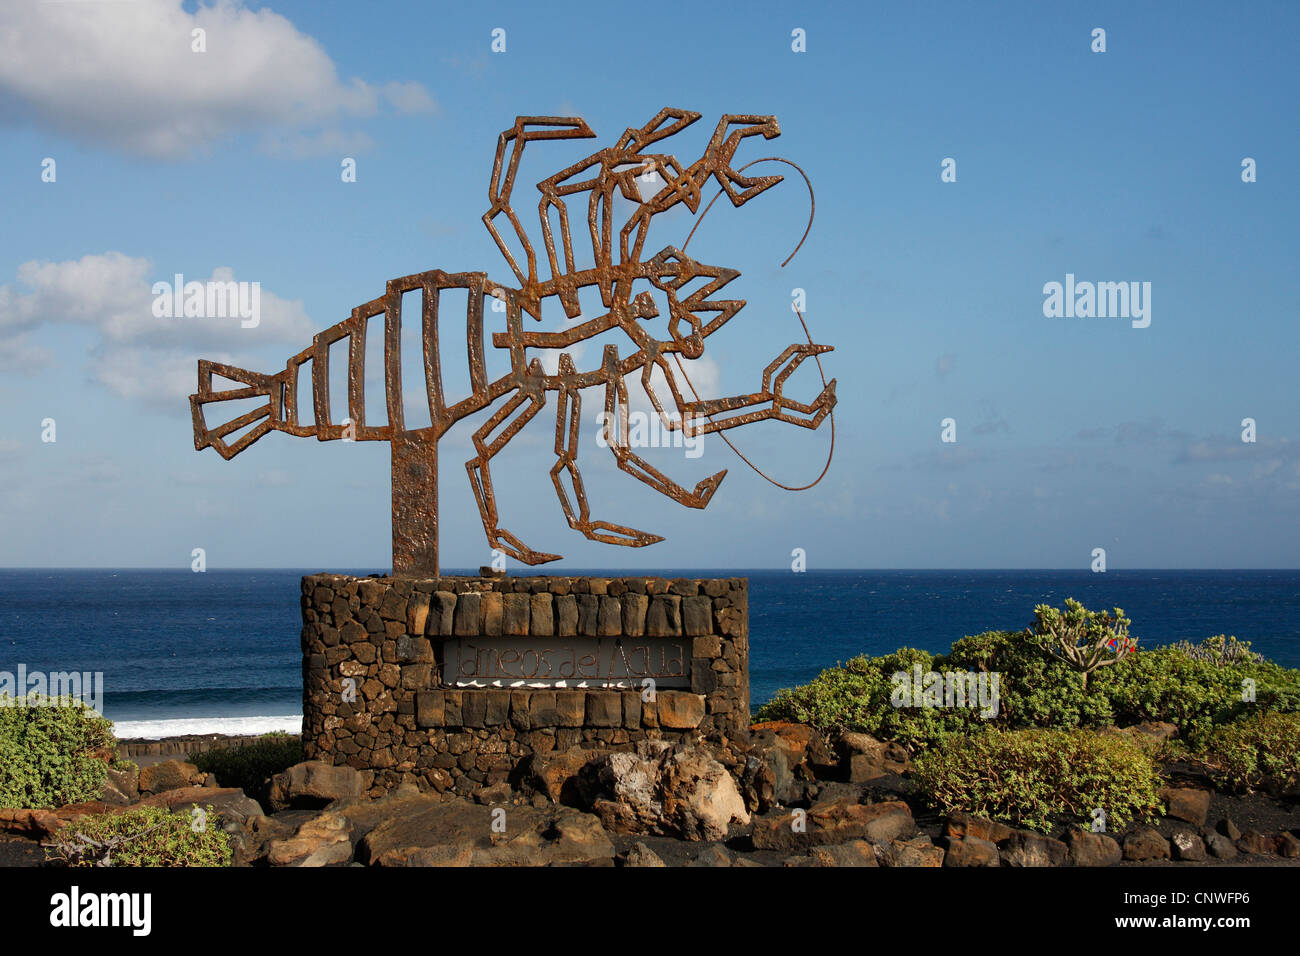 Munidopsis polymorpha (Munidopsis polymorpha), iron monument in the shape of a crab, Canary Islands, Lanzarote, Stock Photo